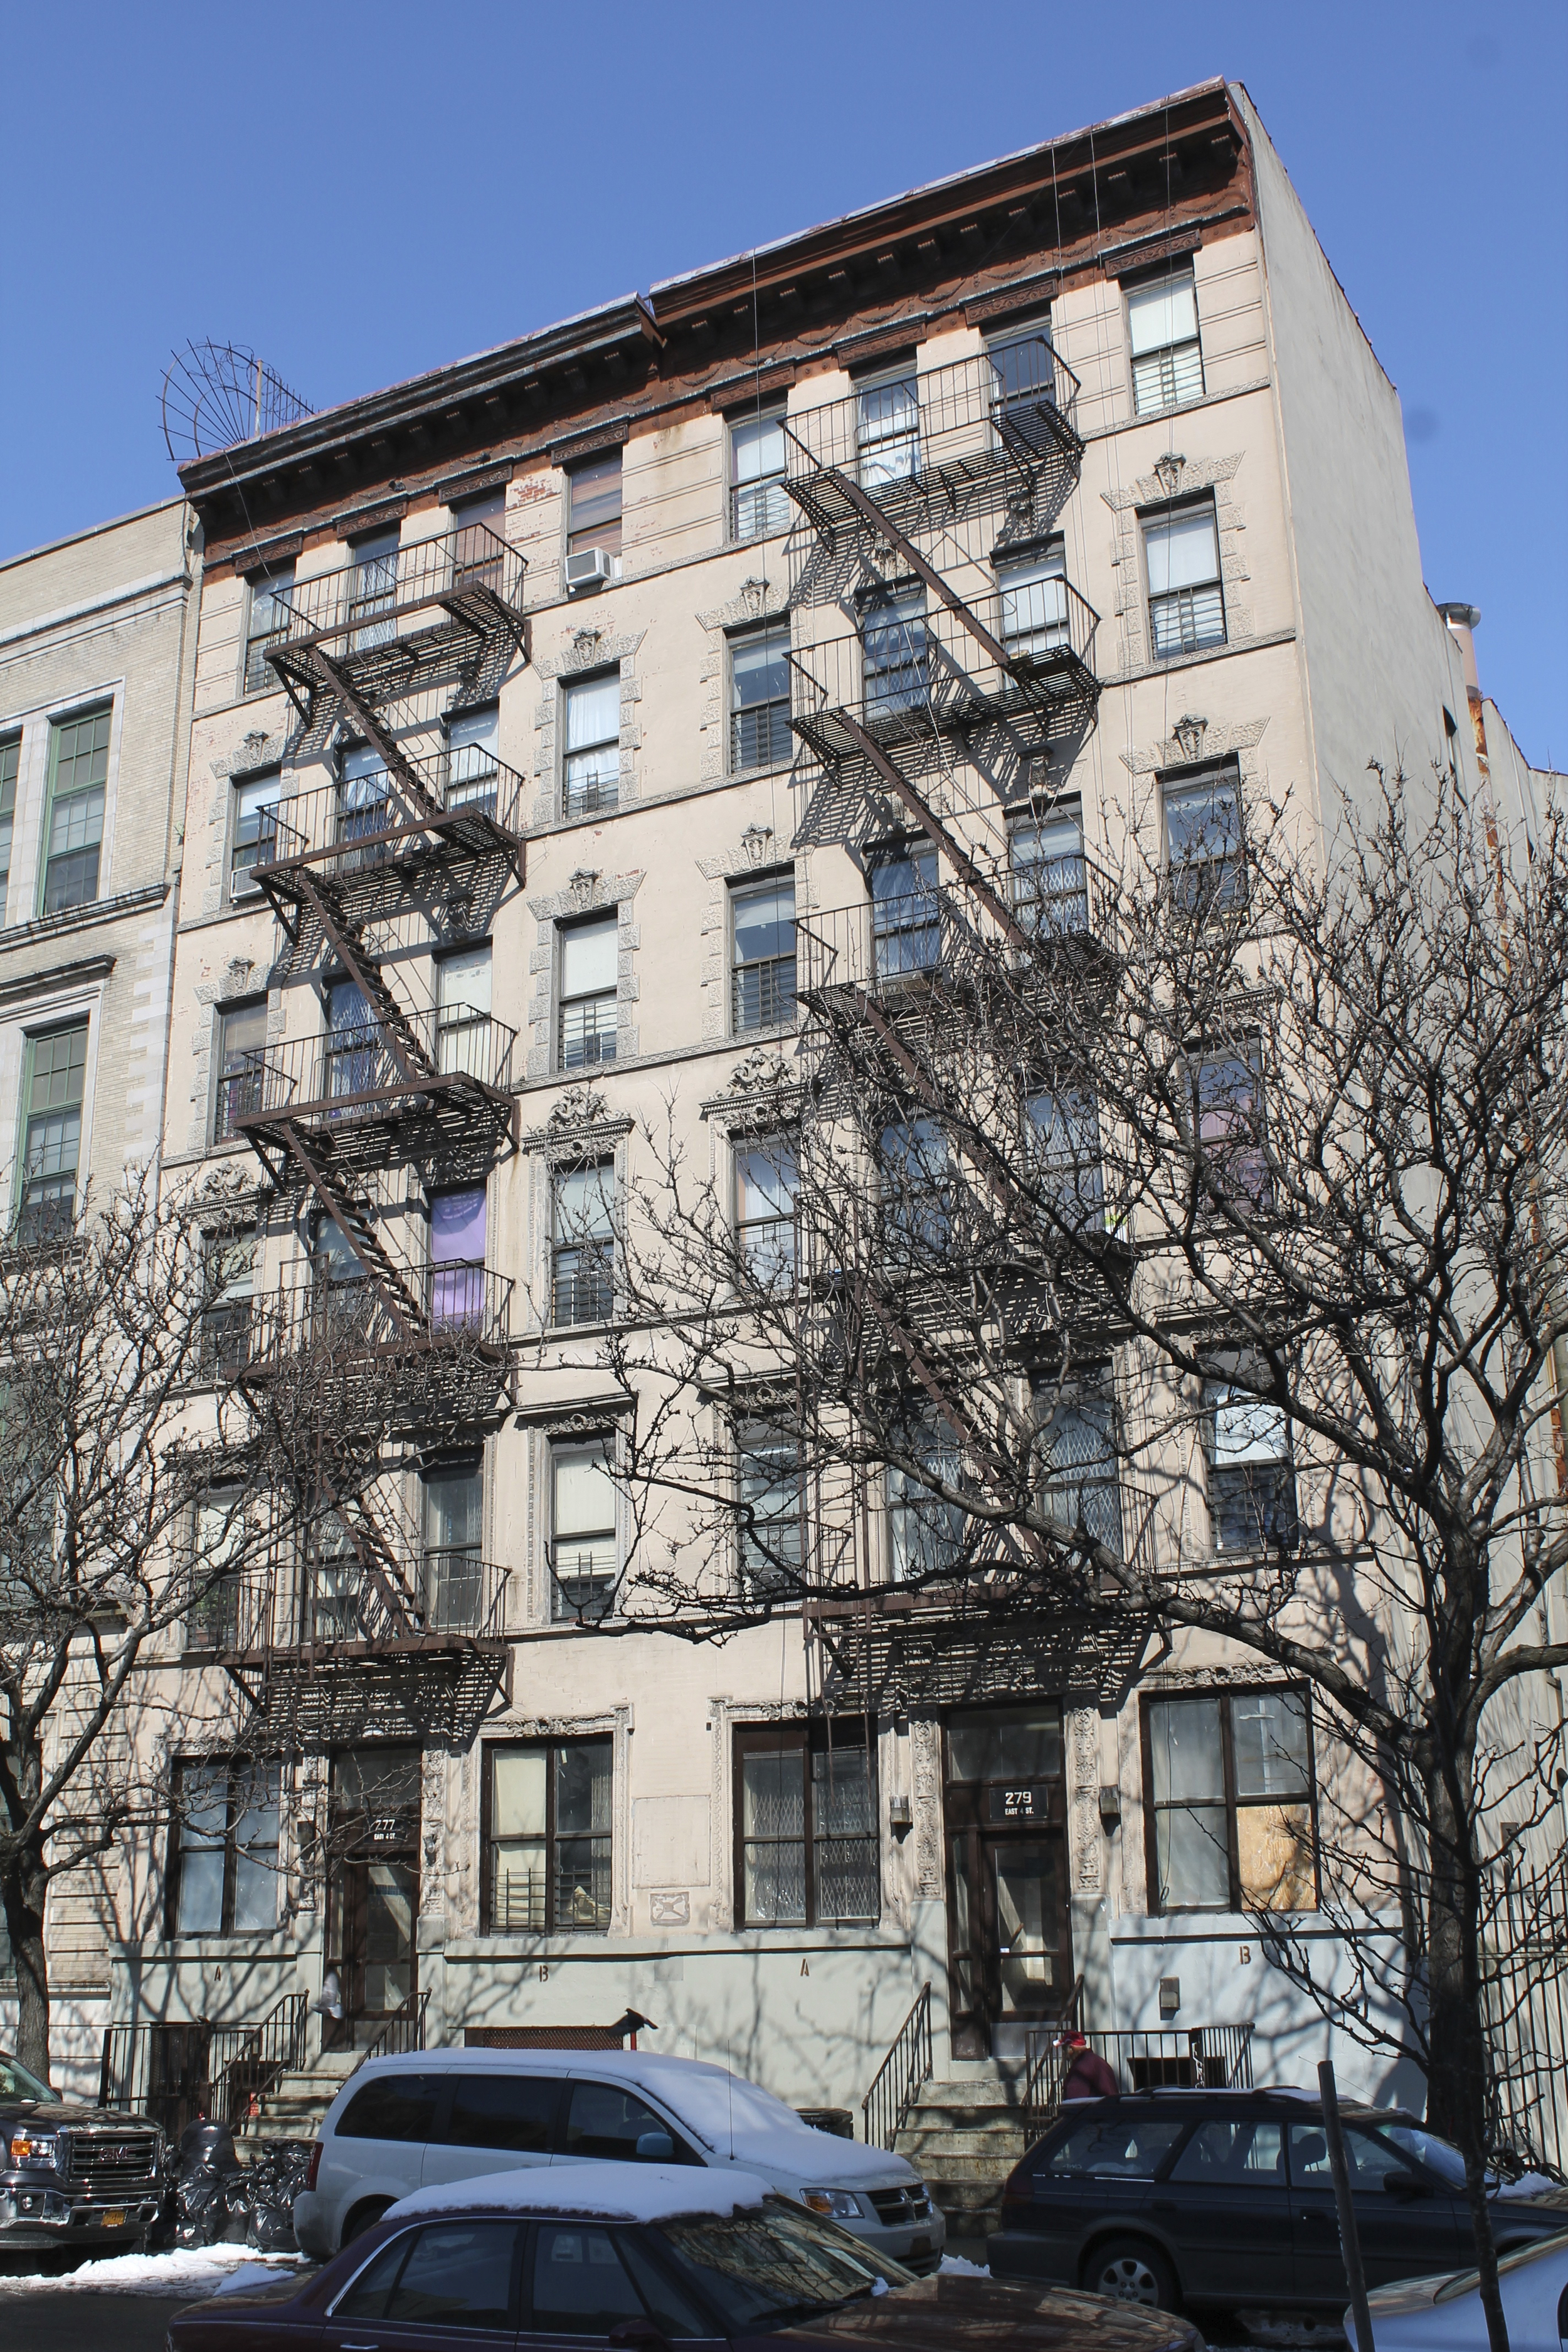 277 East 4th Street, at left, and 279 East 4th Street, at right, as seen on March 2, 2015. Triborough collects generous rents for the 25 apartments in these two buildings. Source : Louis Flores